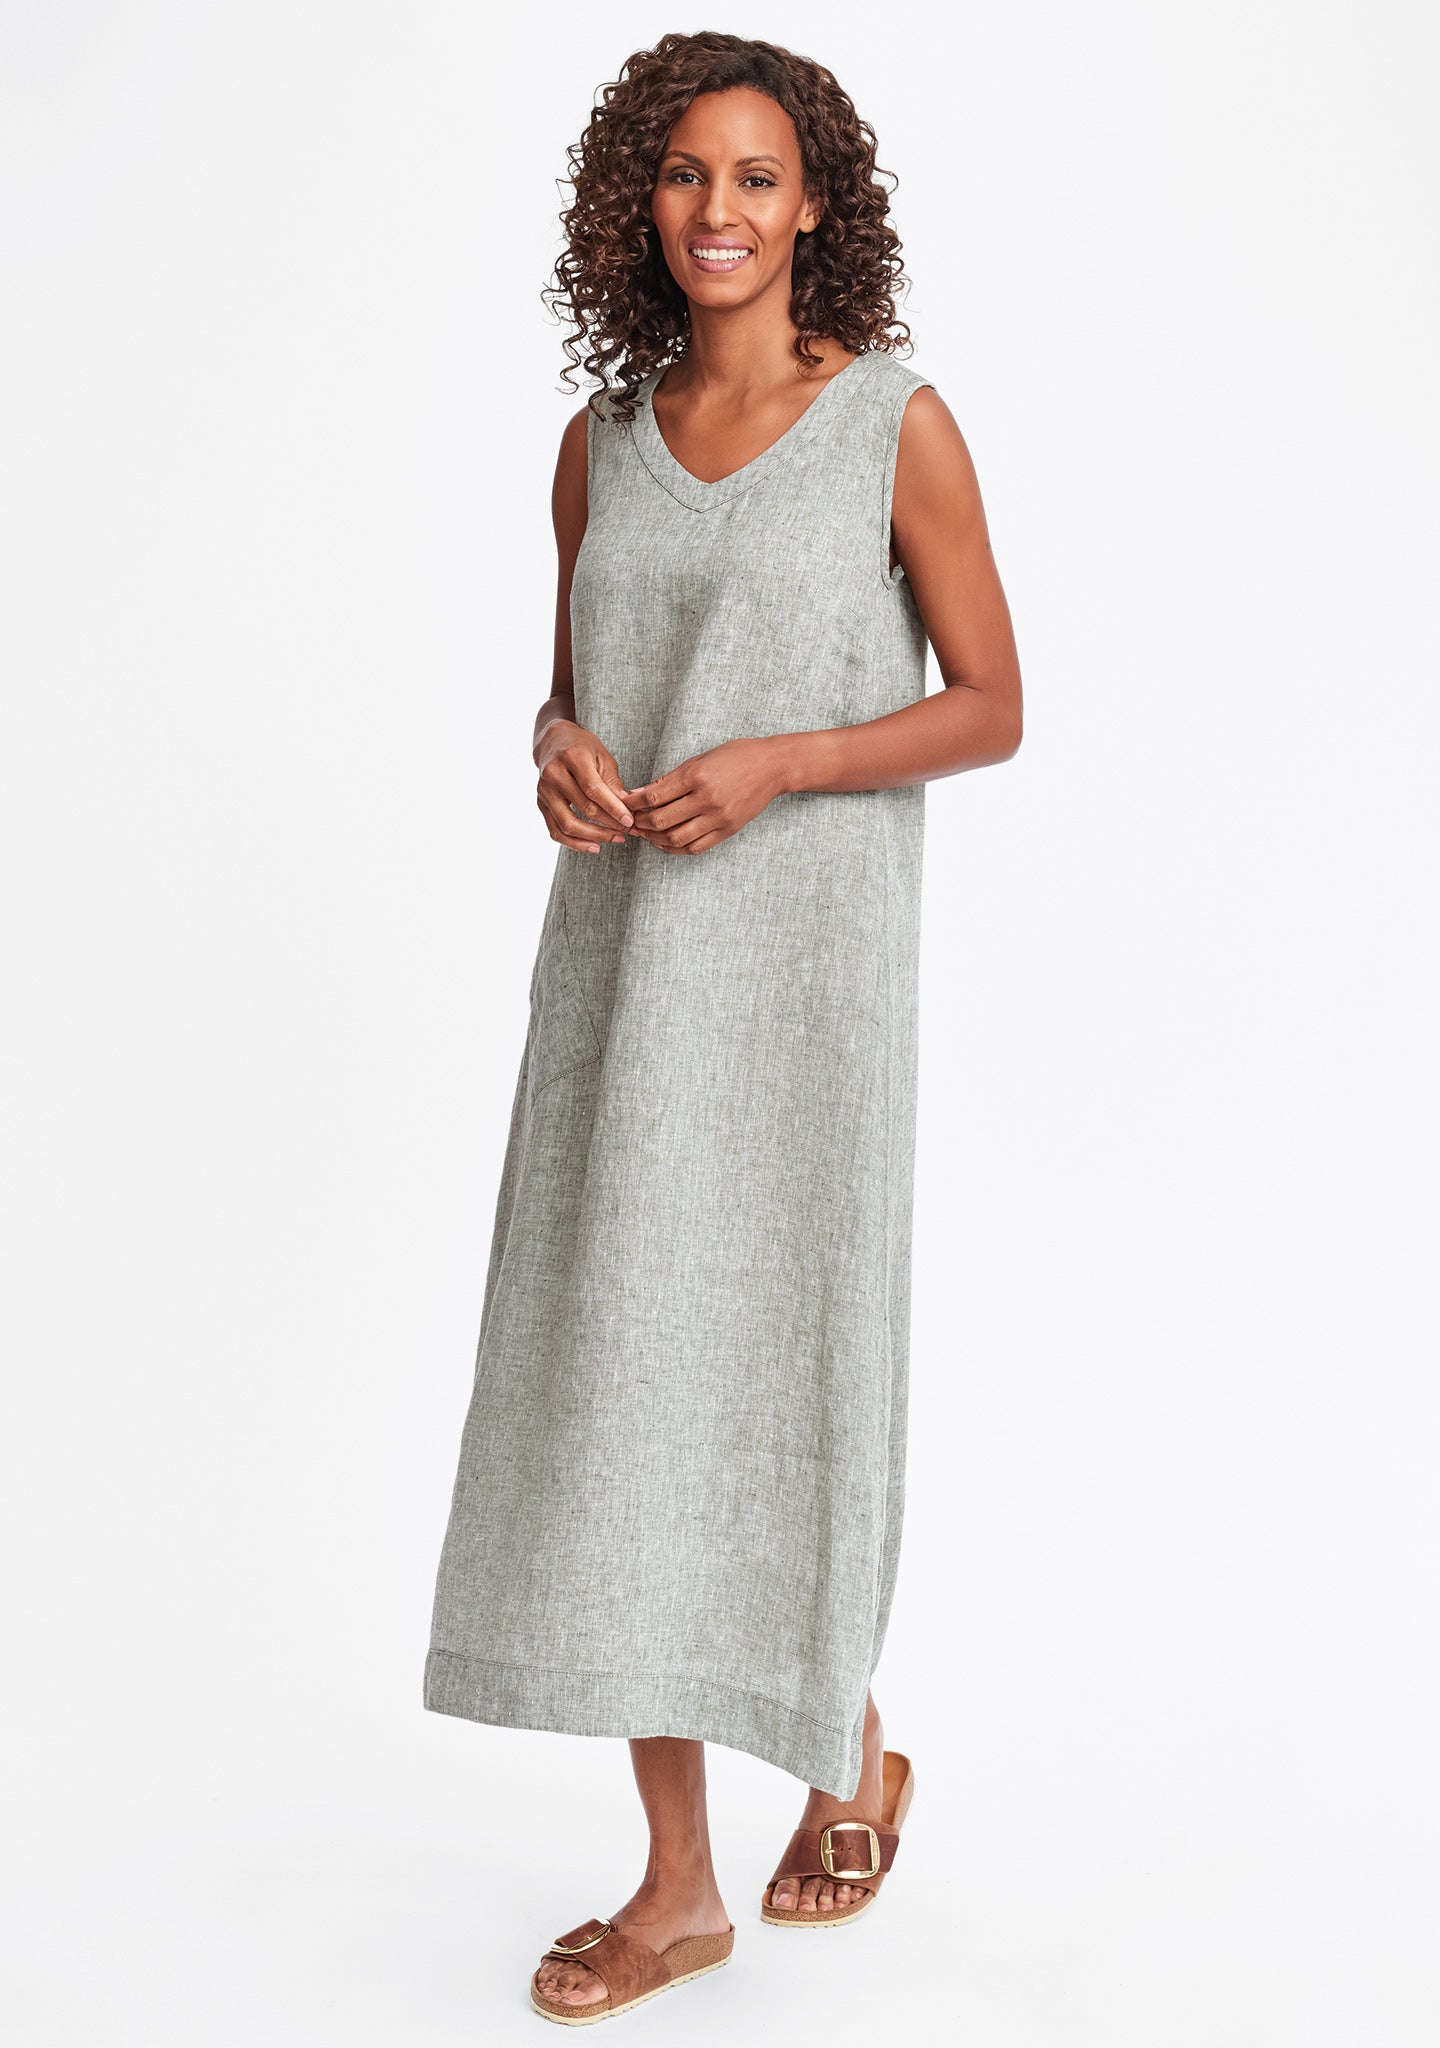 serenity now linen maxi dress green